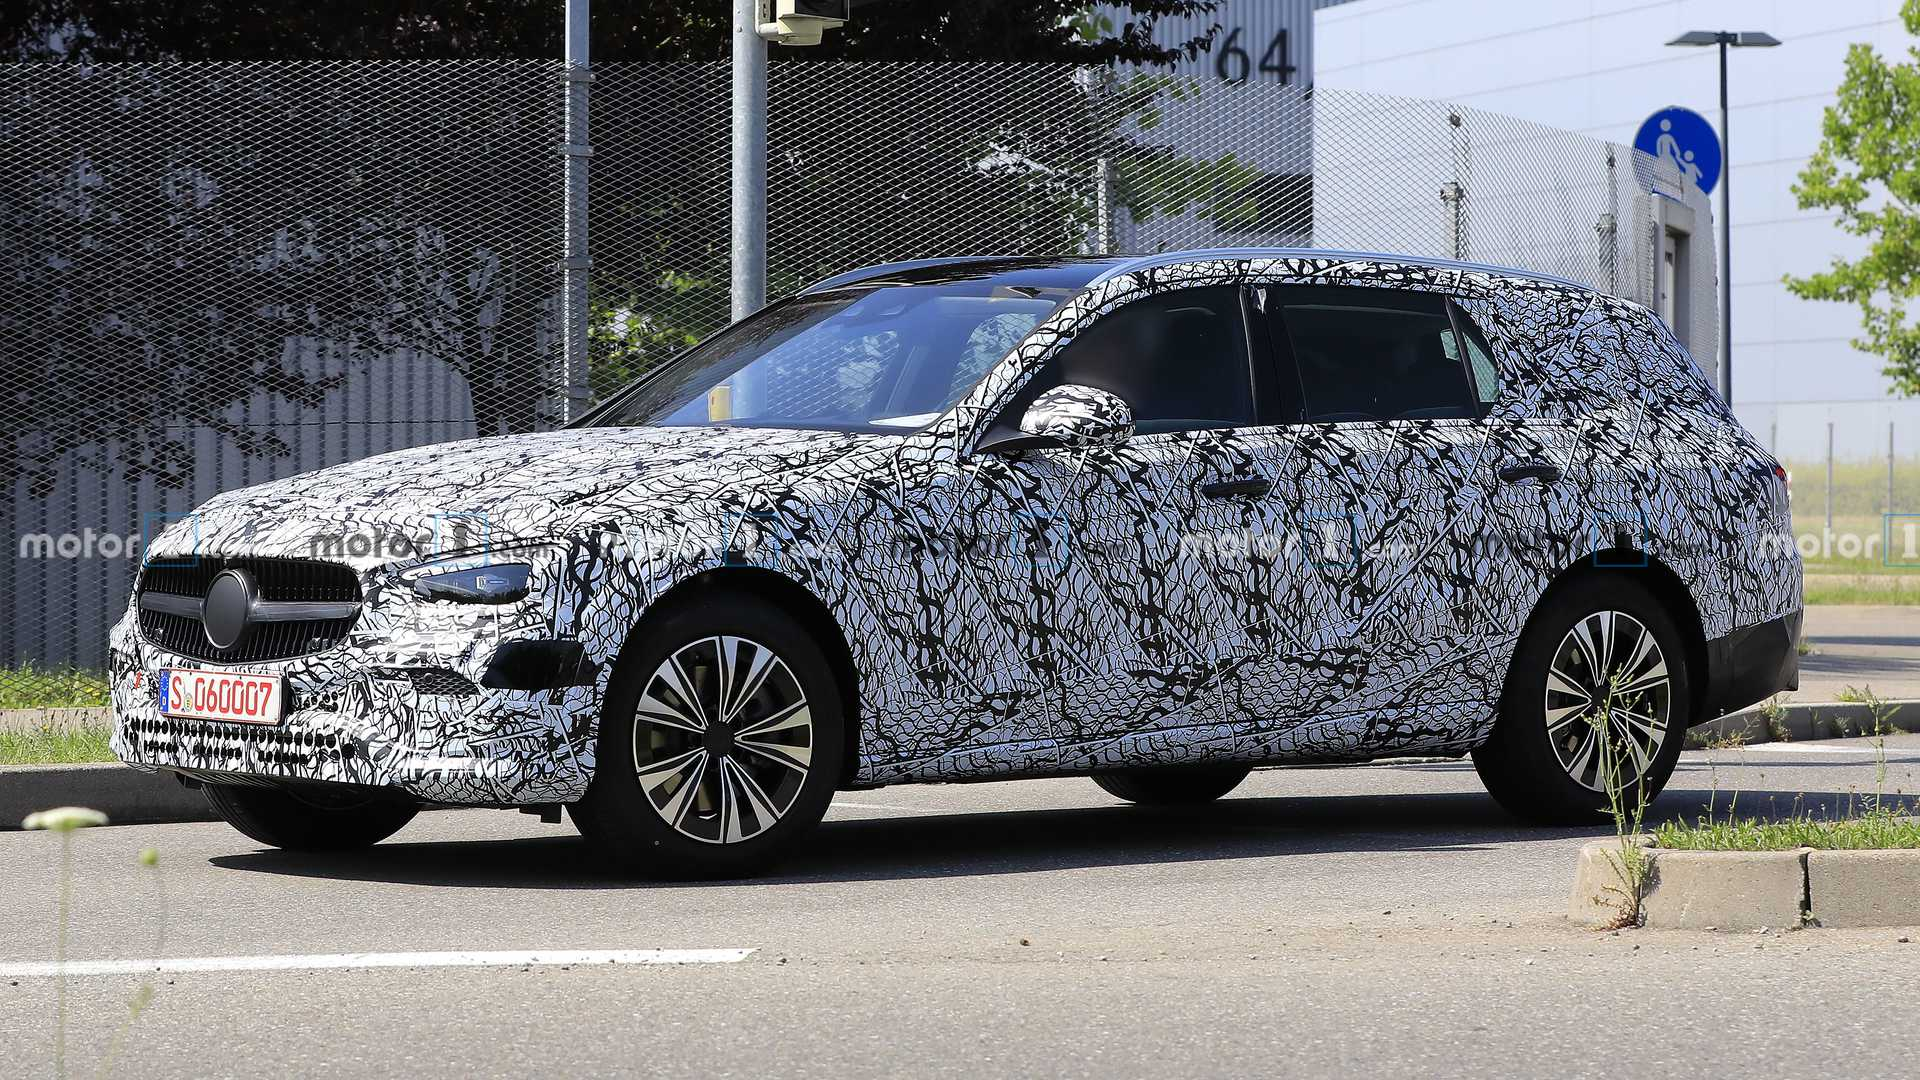 2021-mercedes-c-class-estate-spy-photo-p